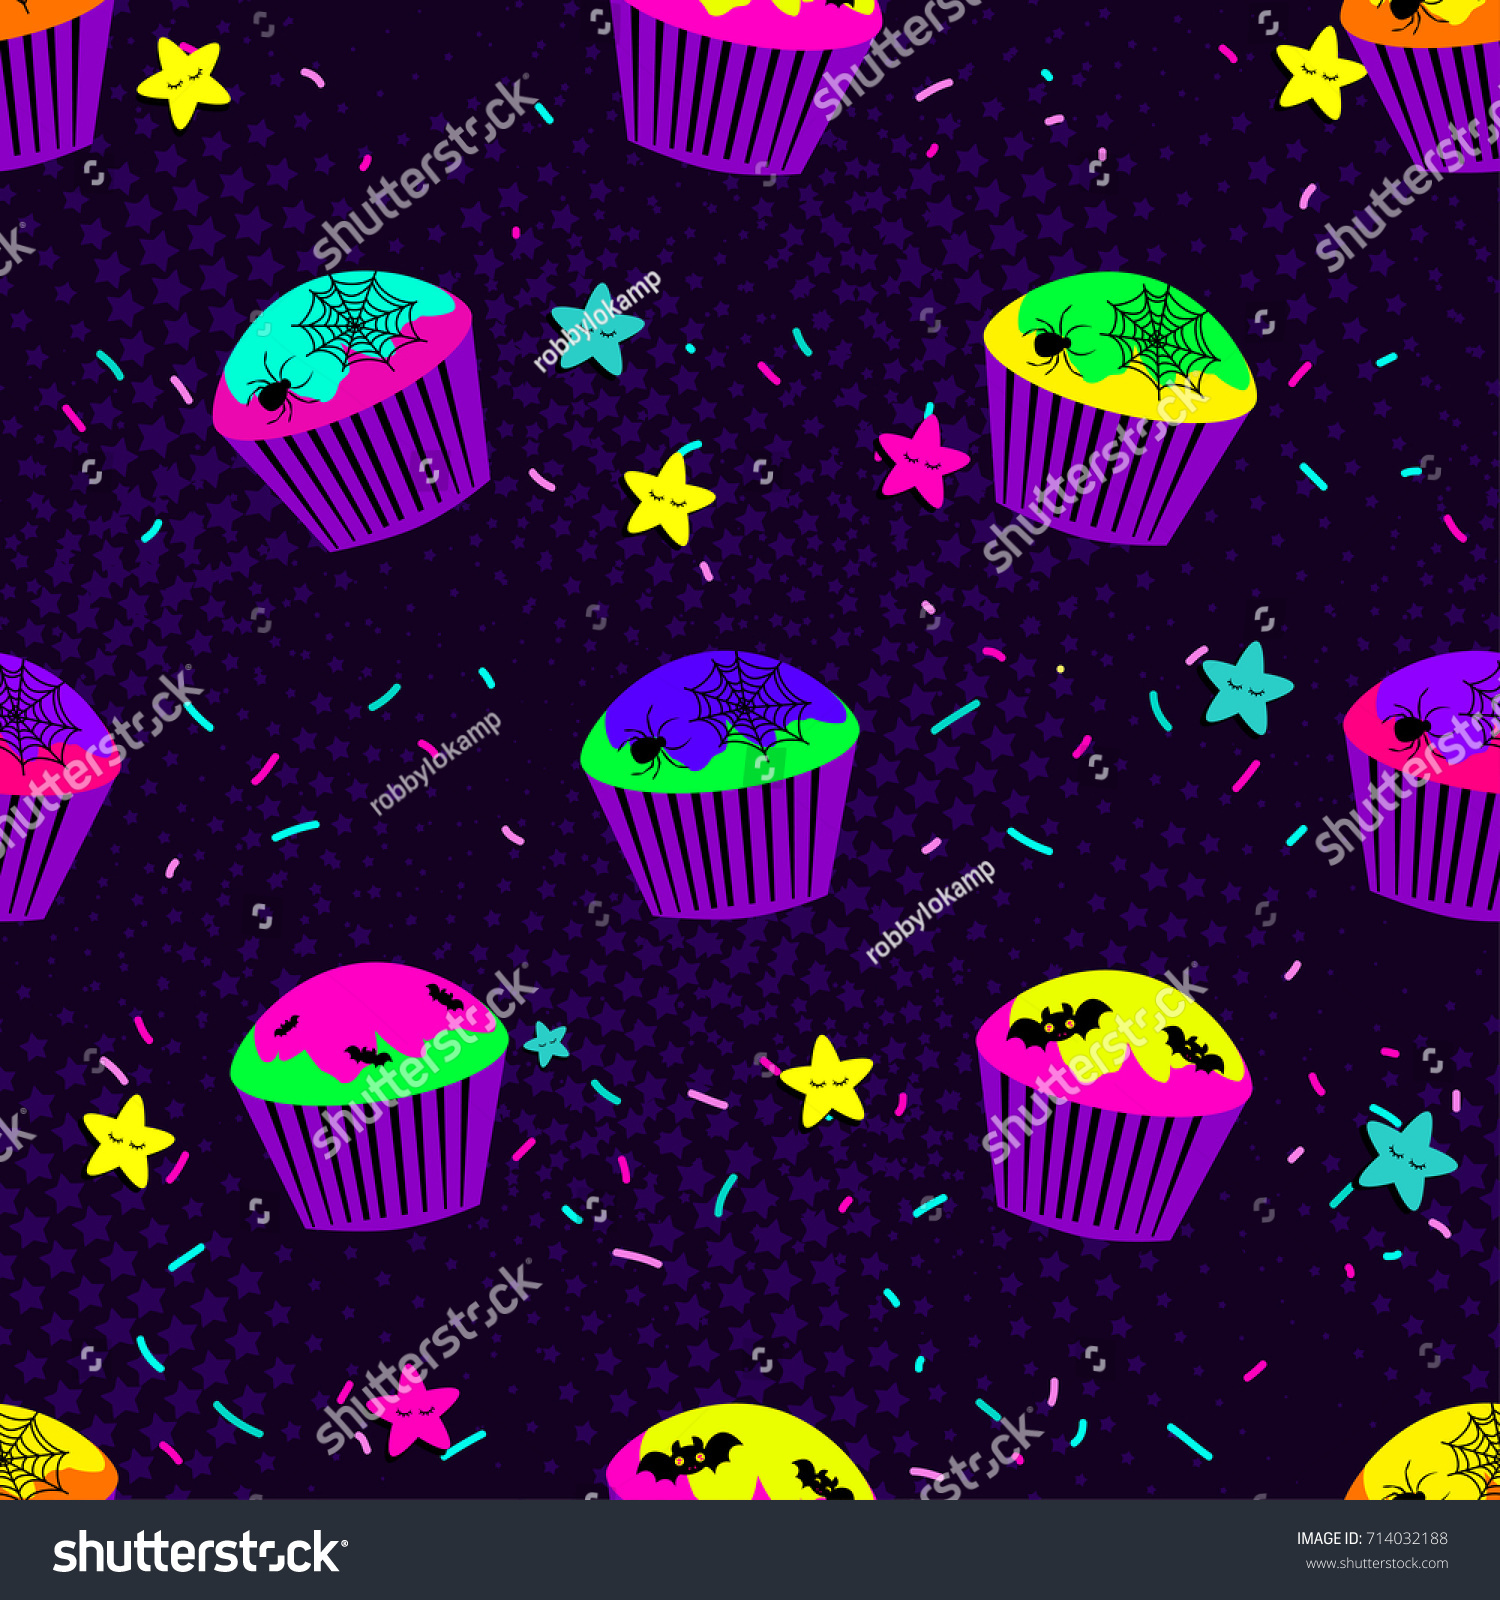 Cool Wallpaper Halloween Neon - stock-vector-abstract-seamless-pattern-for-girls-or-boys-creative-vector-background-with-cupcake-skull-bat-714032188  Perfect Image Reference_197766.jpg